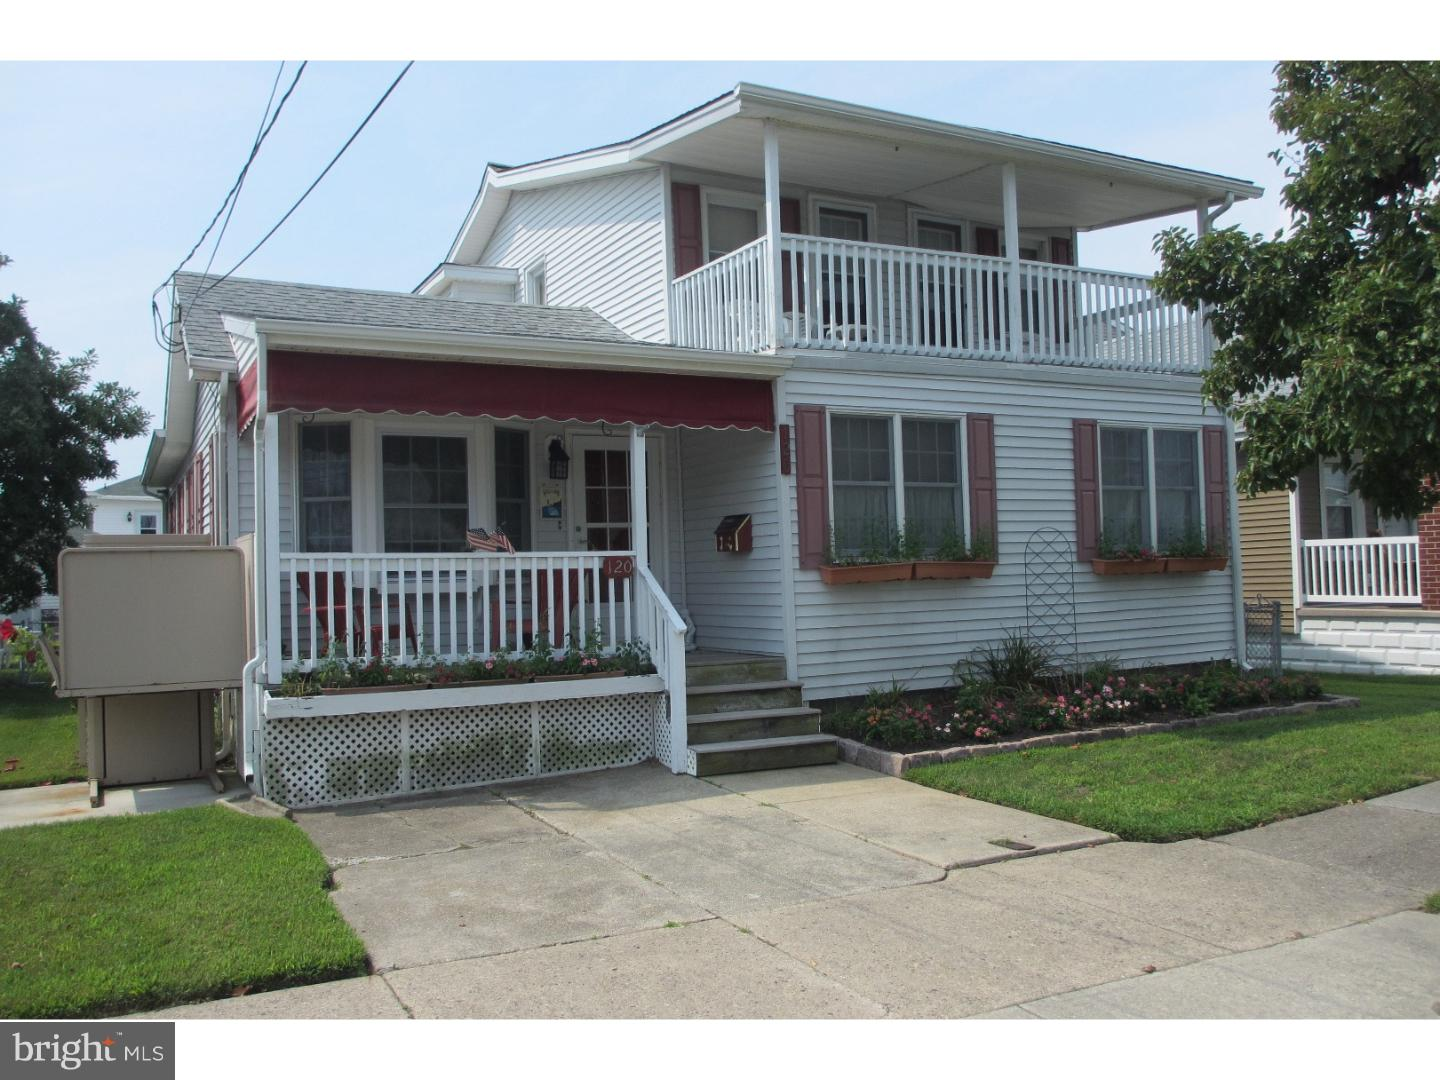 120 W 19TH AVENUE, WILDWOOD, NJ 08260